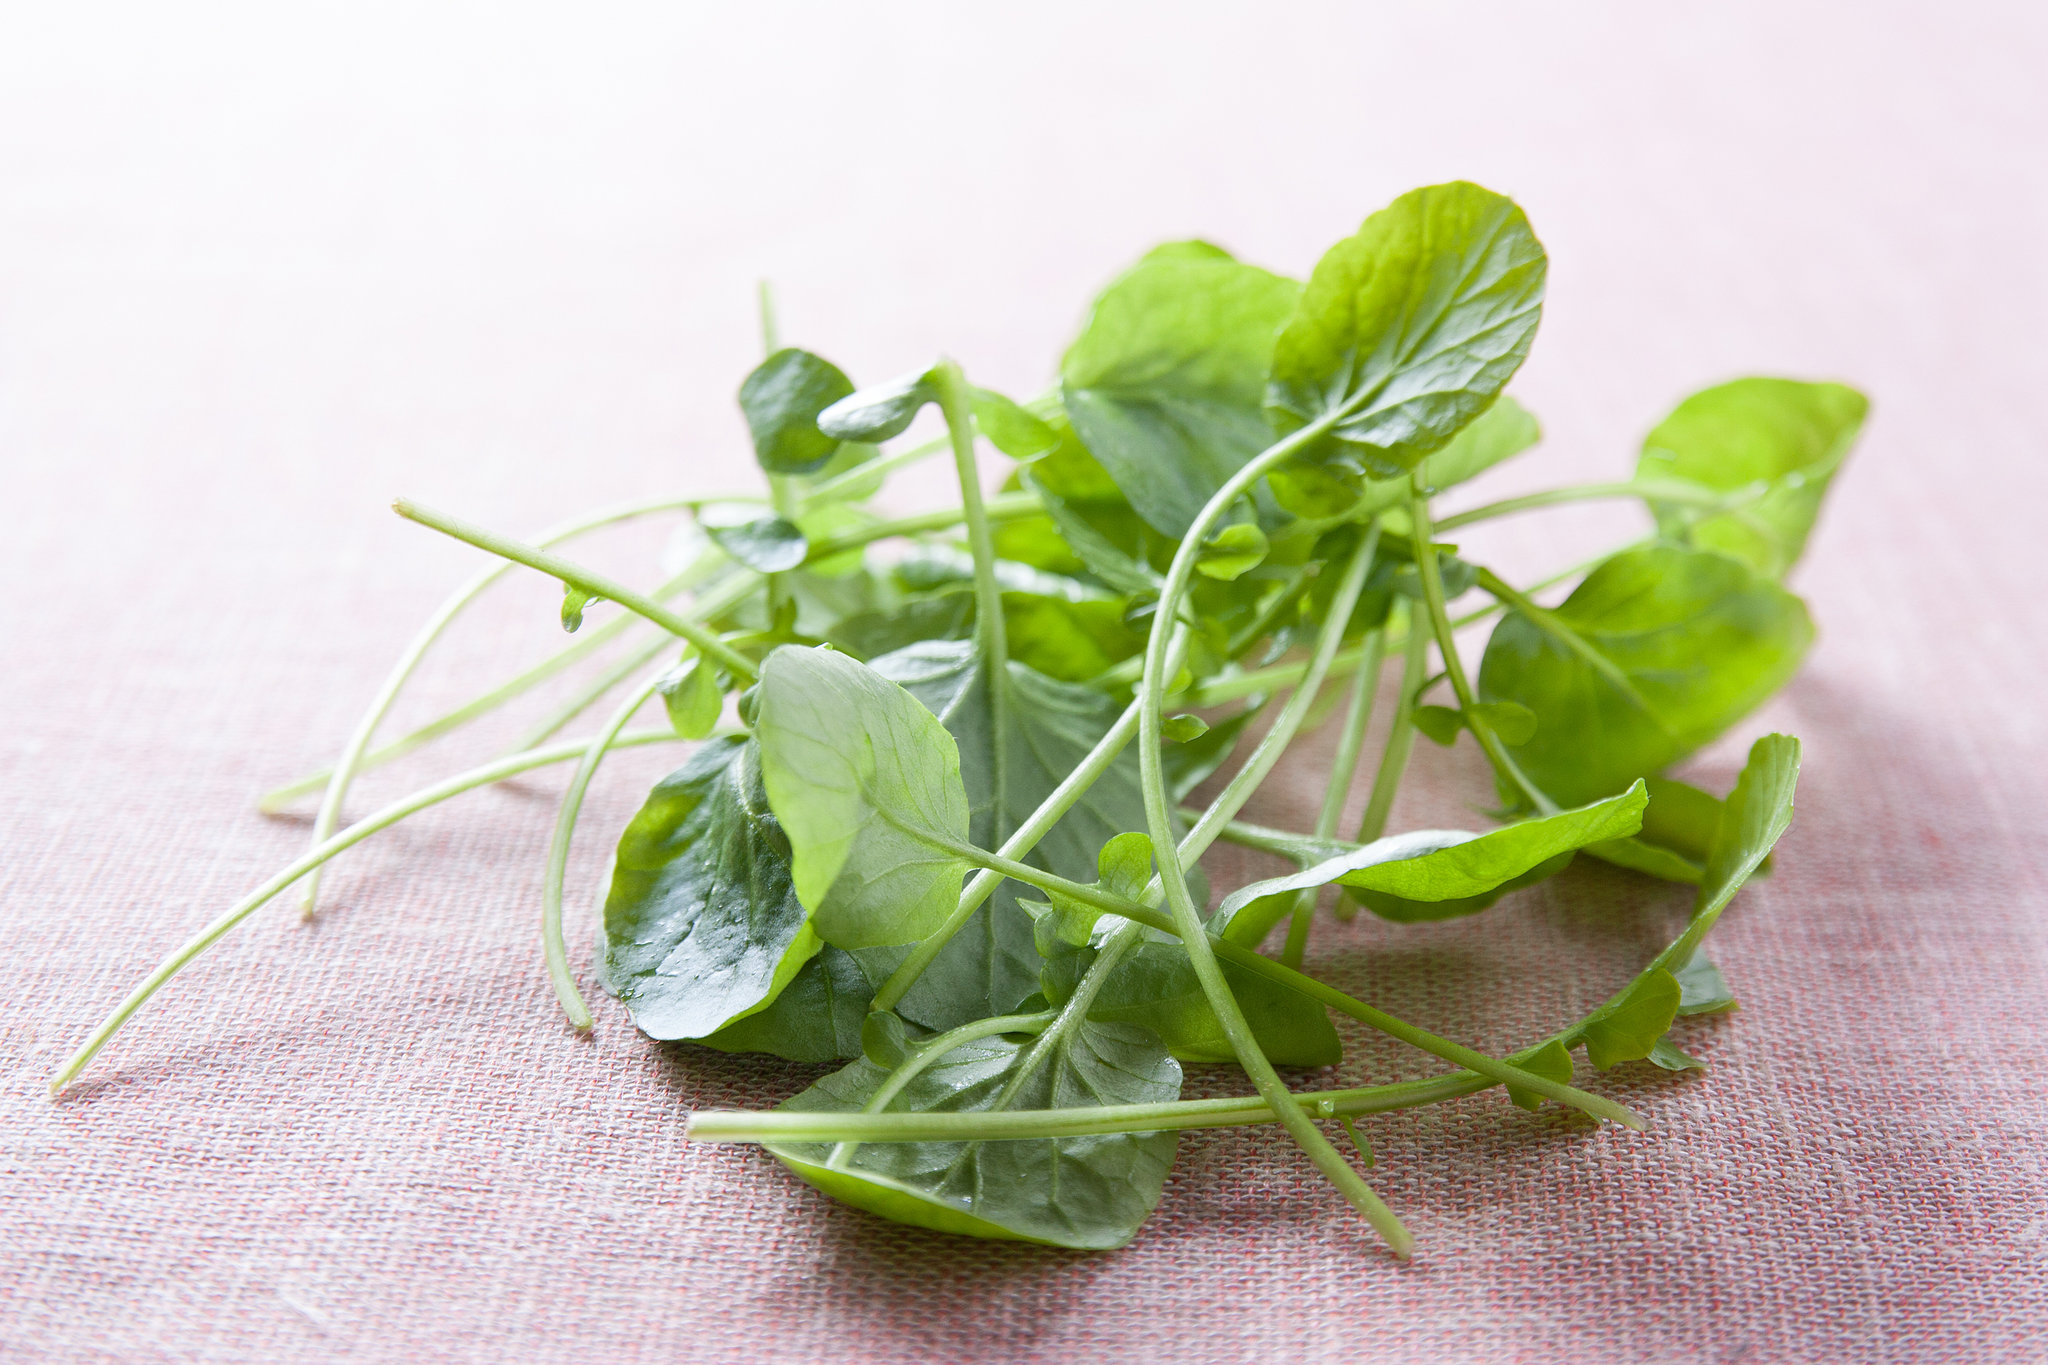 What Is Your Favorite Way to Eat Watercress?